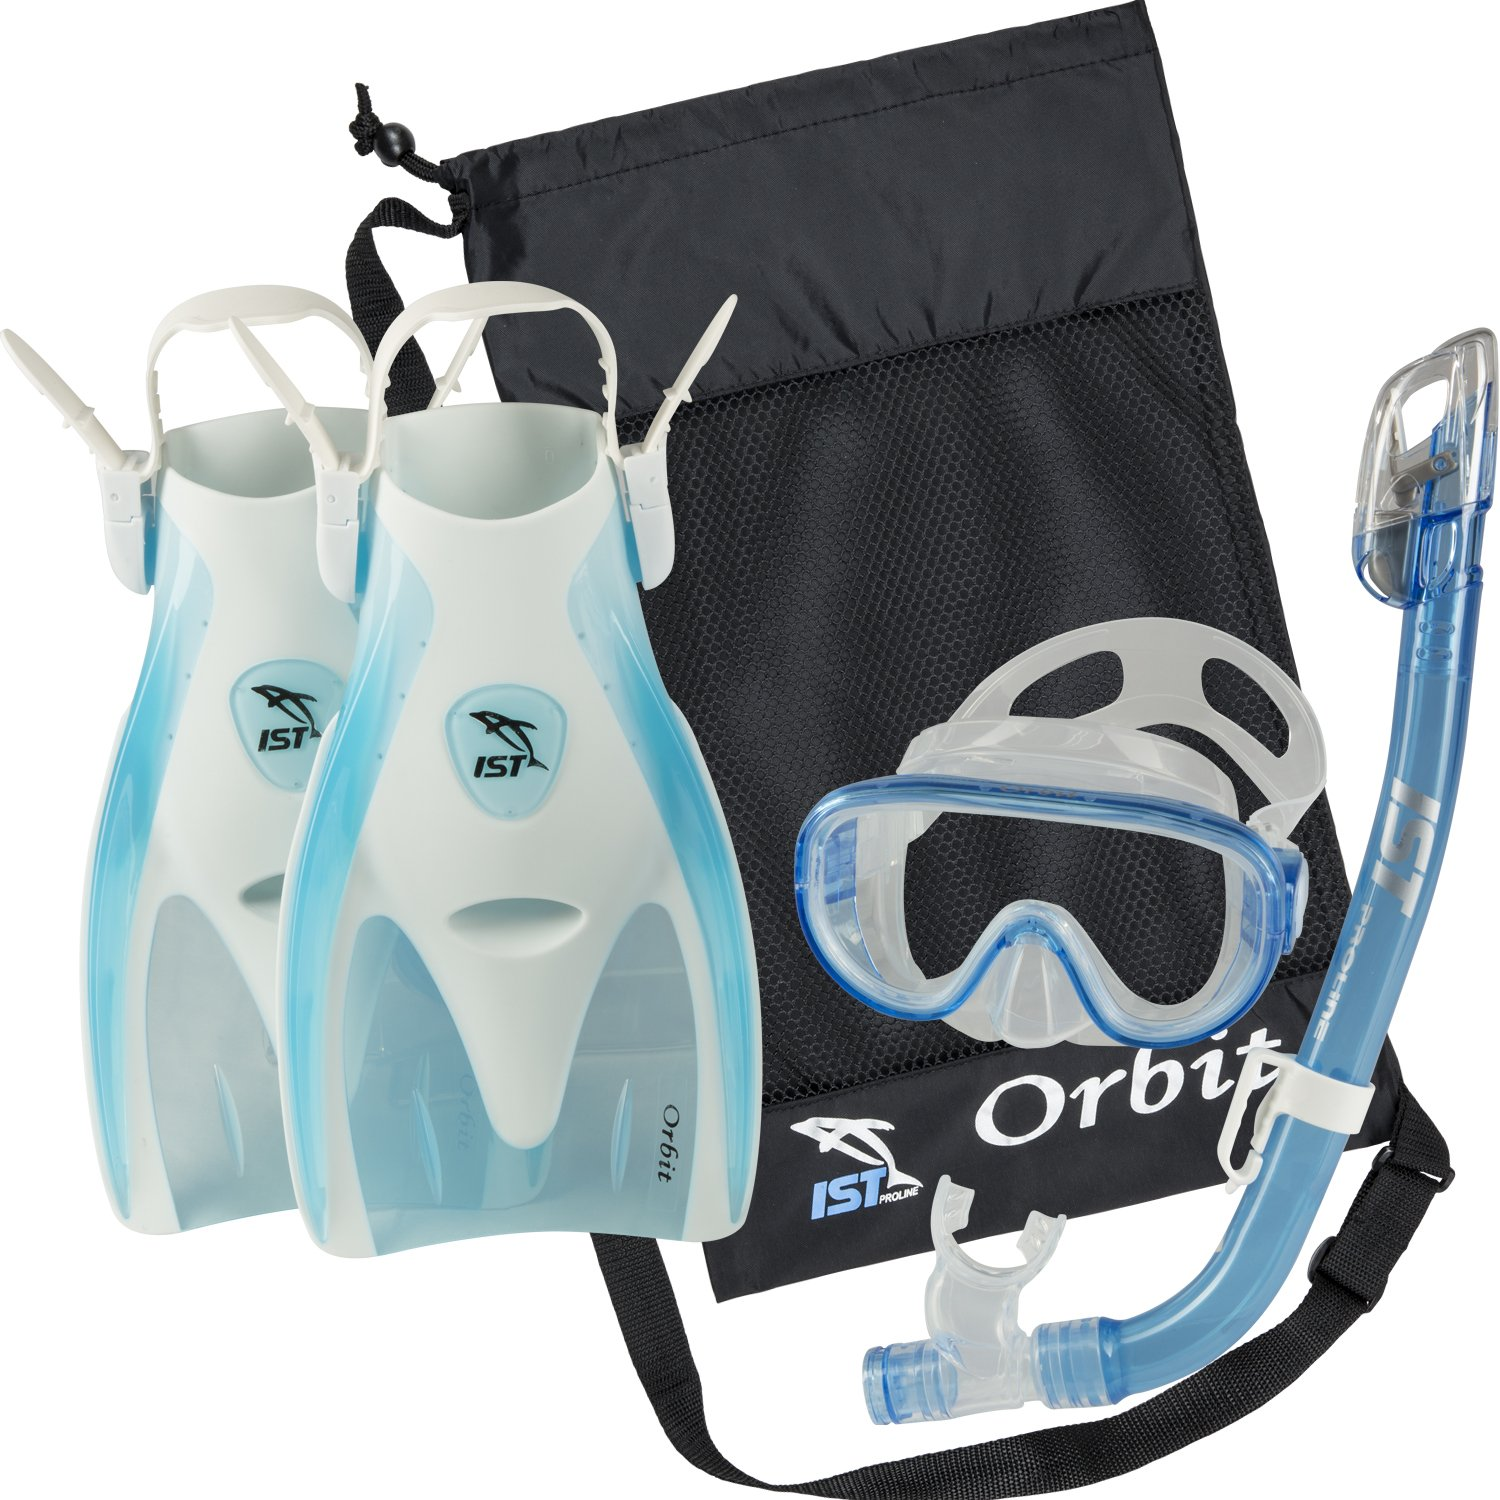 IST Orbit Snorkel Set (White/Clear Blue, Small (2-5))